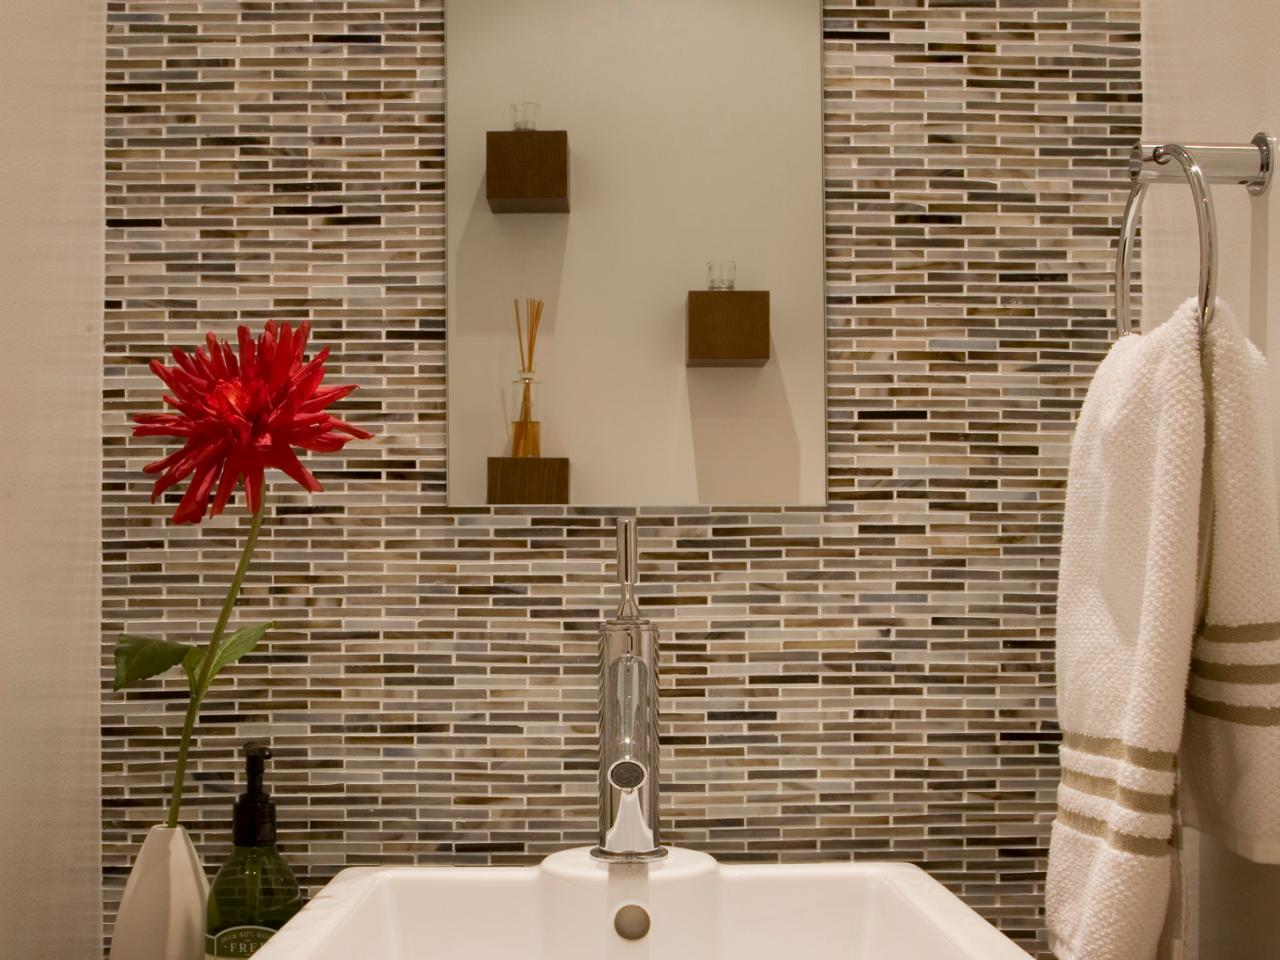 charalambous Hem070219 0121 bathroom jpg rend hgtvcom 1280 960. 21 unique bathroom tile designs ideas and pictures